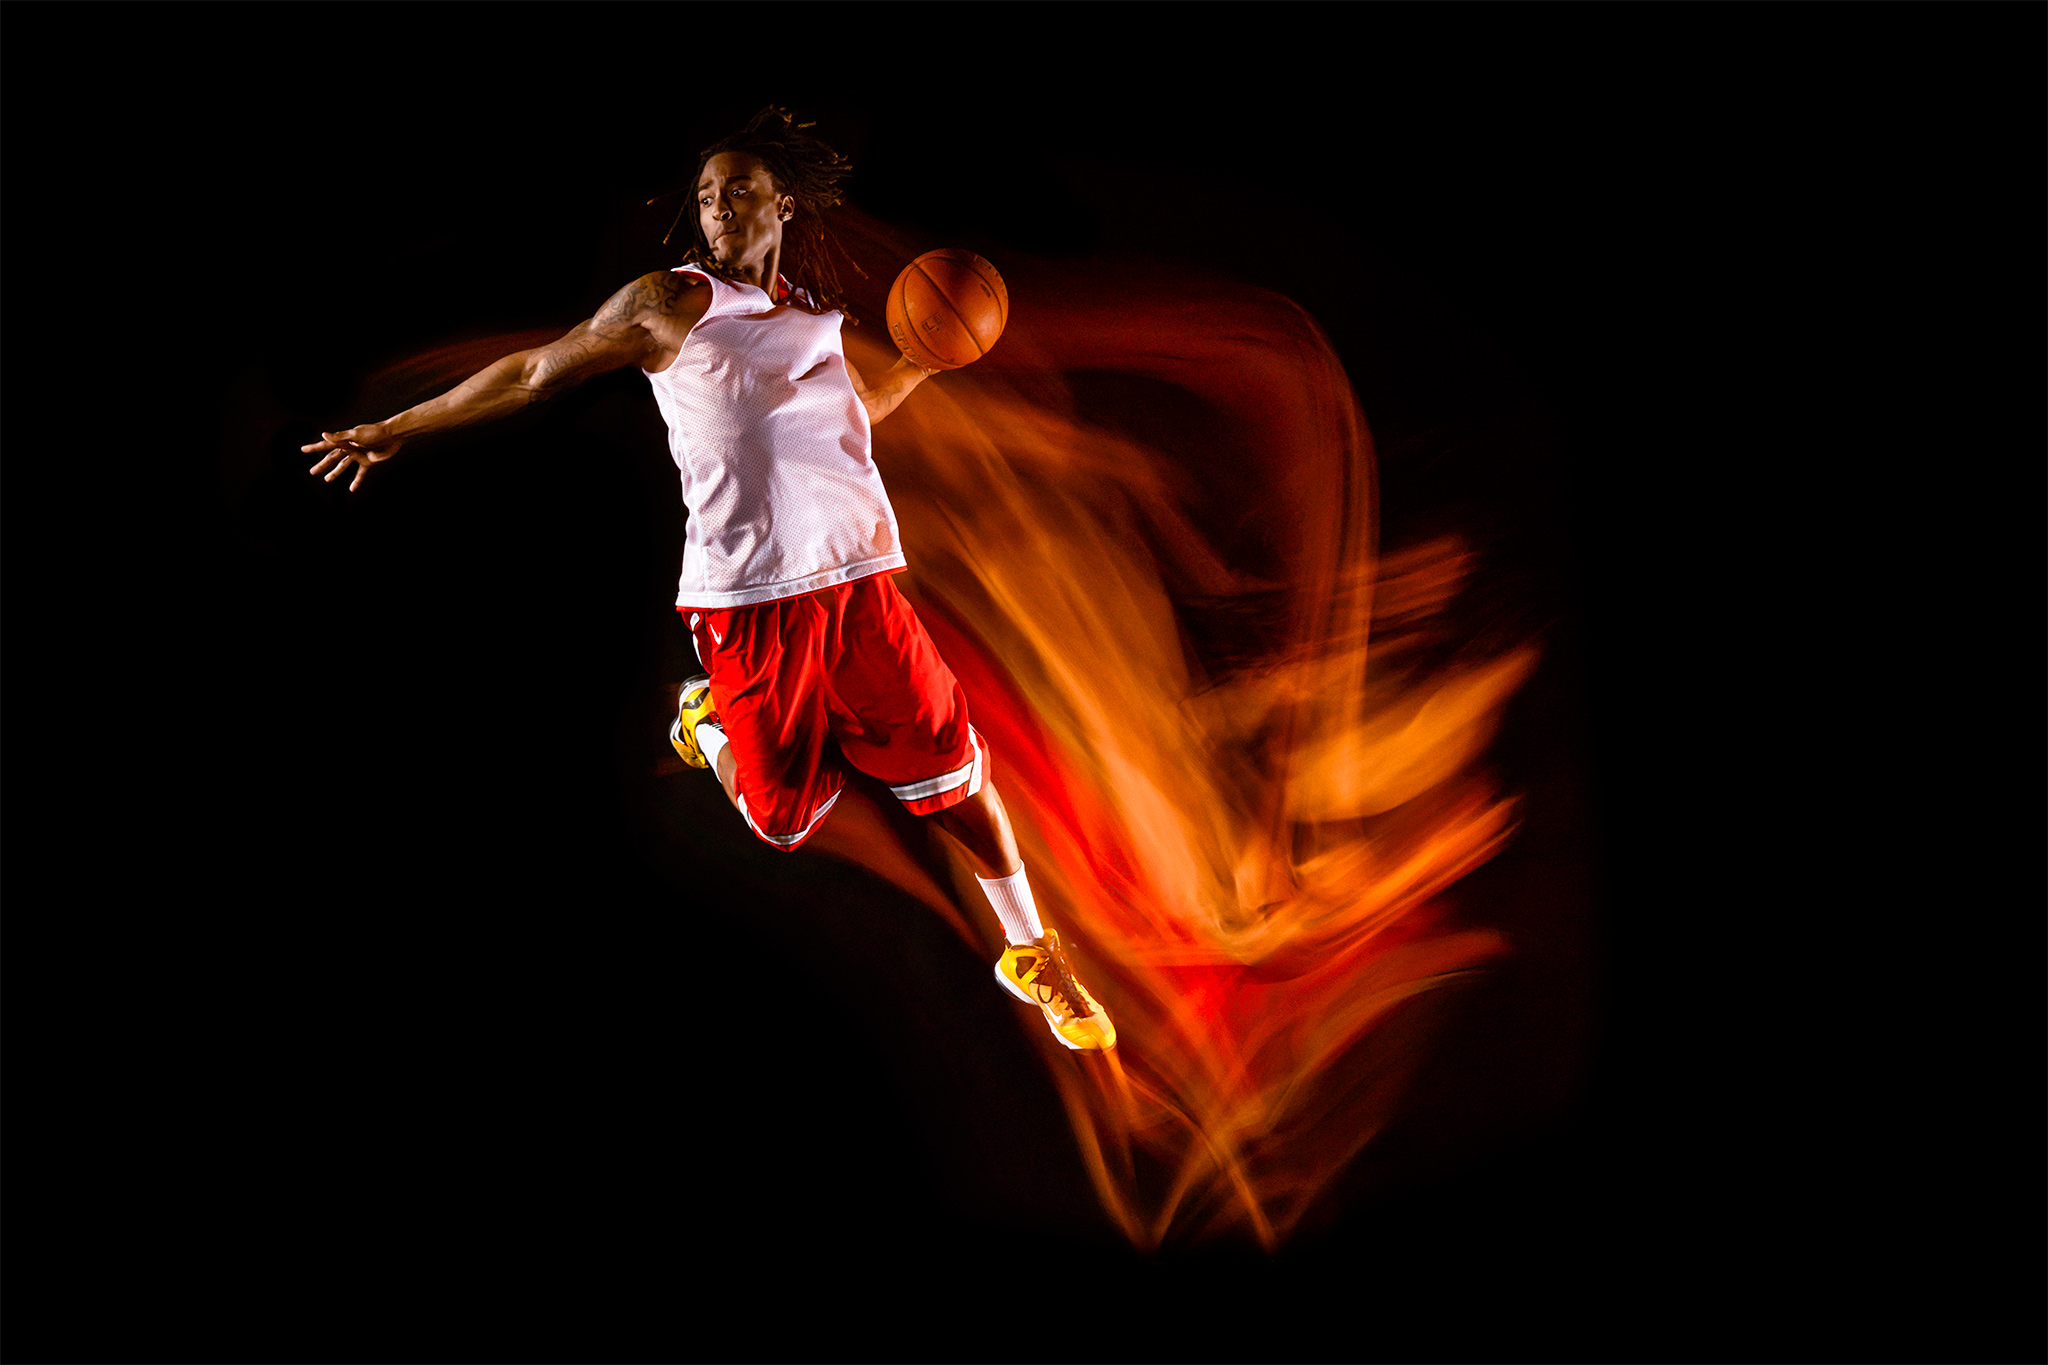 Basketball Dunk Trajectory | Zach Ancell Photography